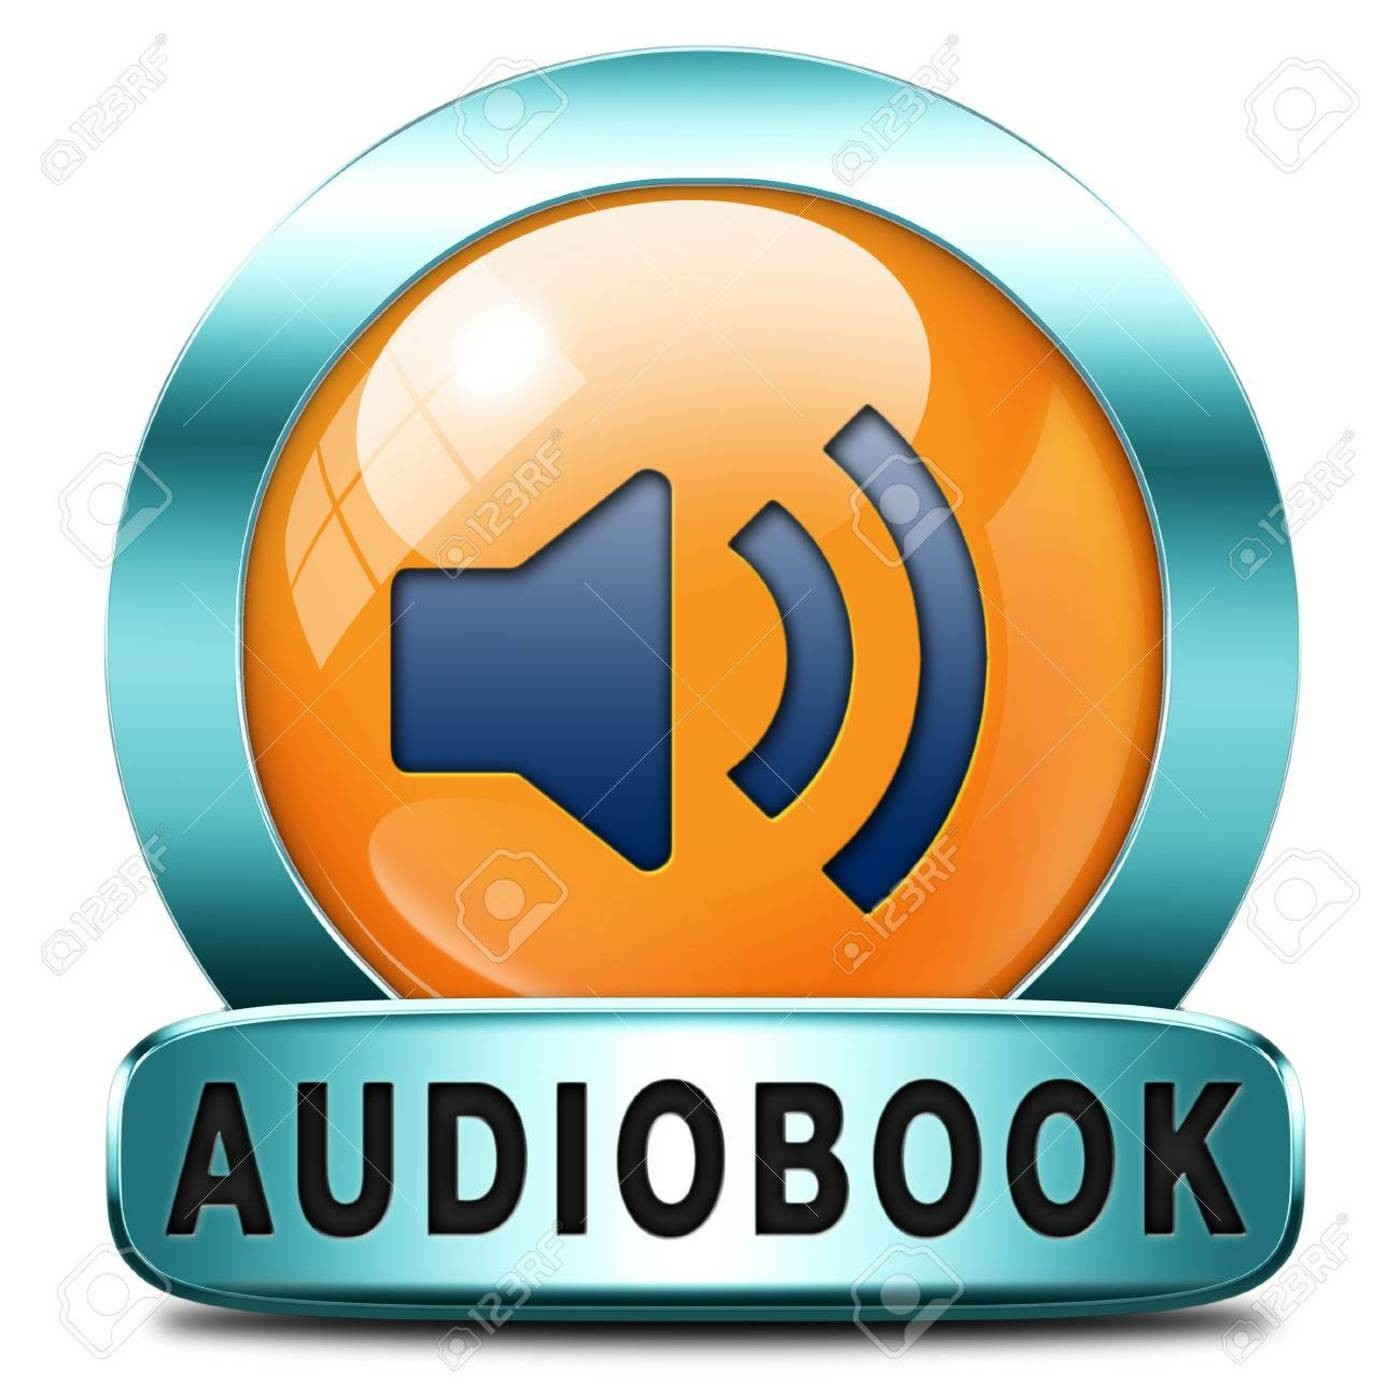 Robert Kiyosaki Audiolibros Gratis Mp3 Guía Para Invertir Investment Guide Audio Libro Por